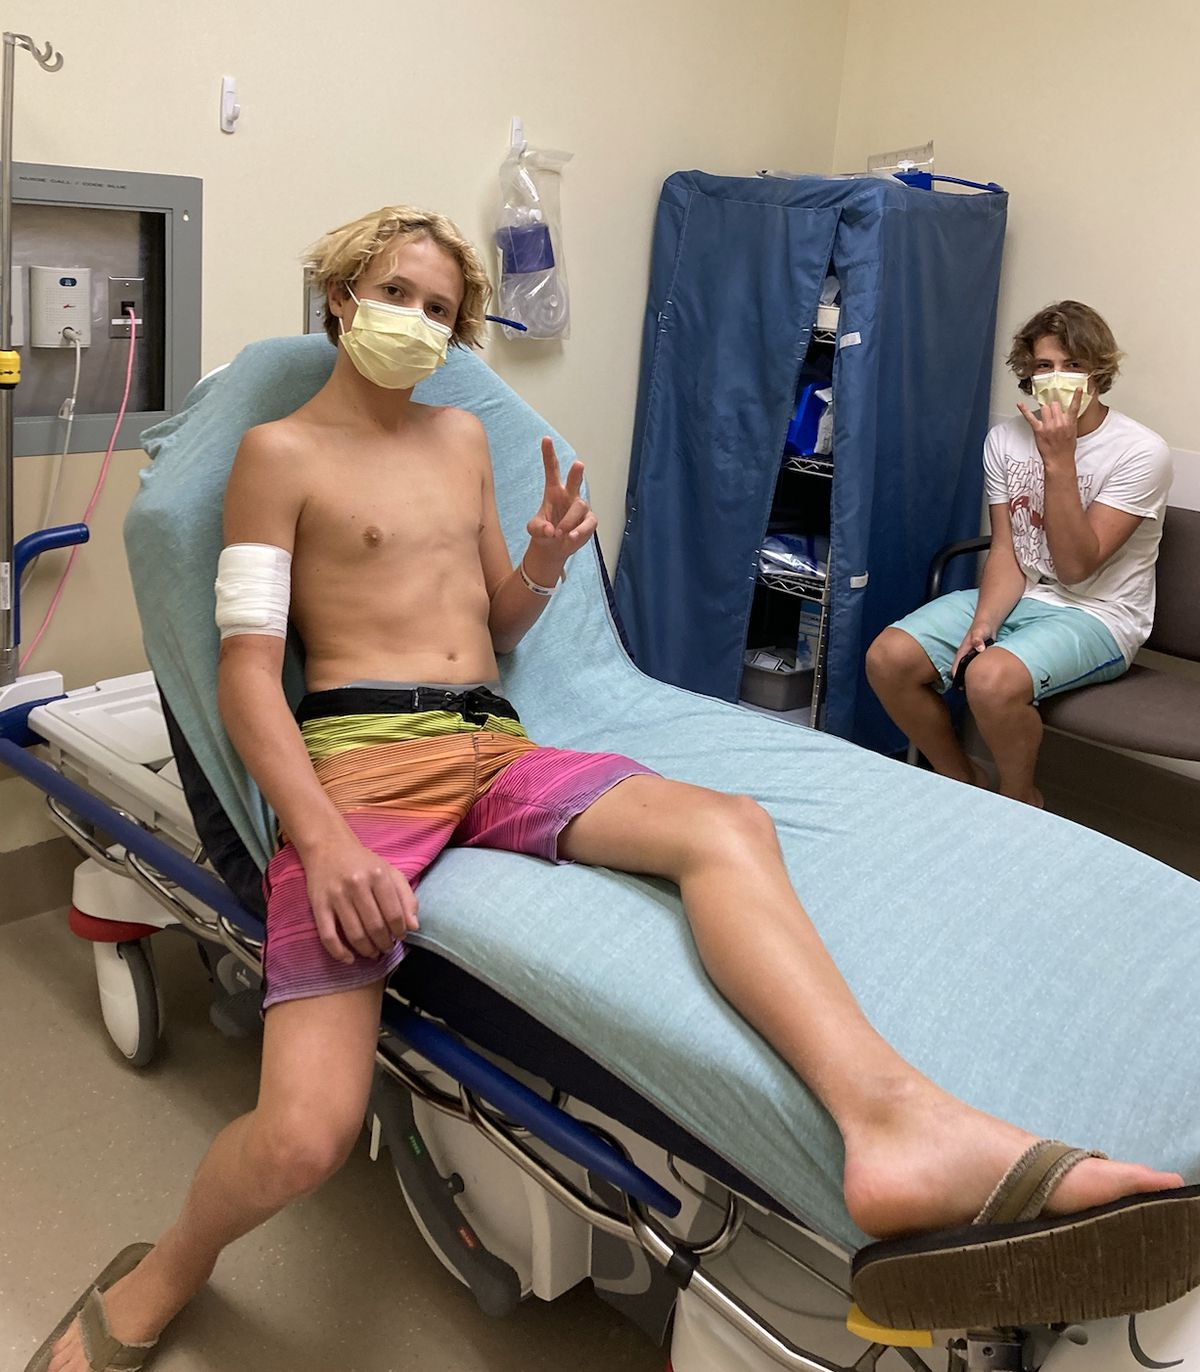 Teen surfer Doyle Nielsen receives treatment at a hospital in Florida following a shark attack on Sept. 9, with his brother Logan nearby.